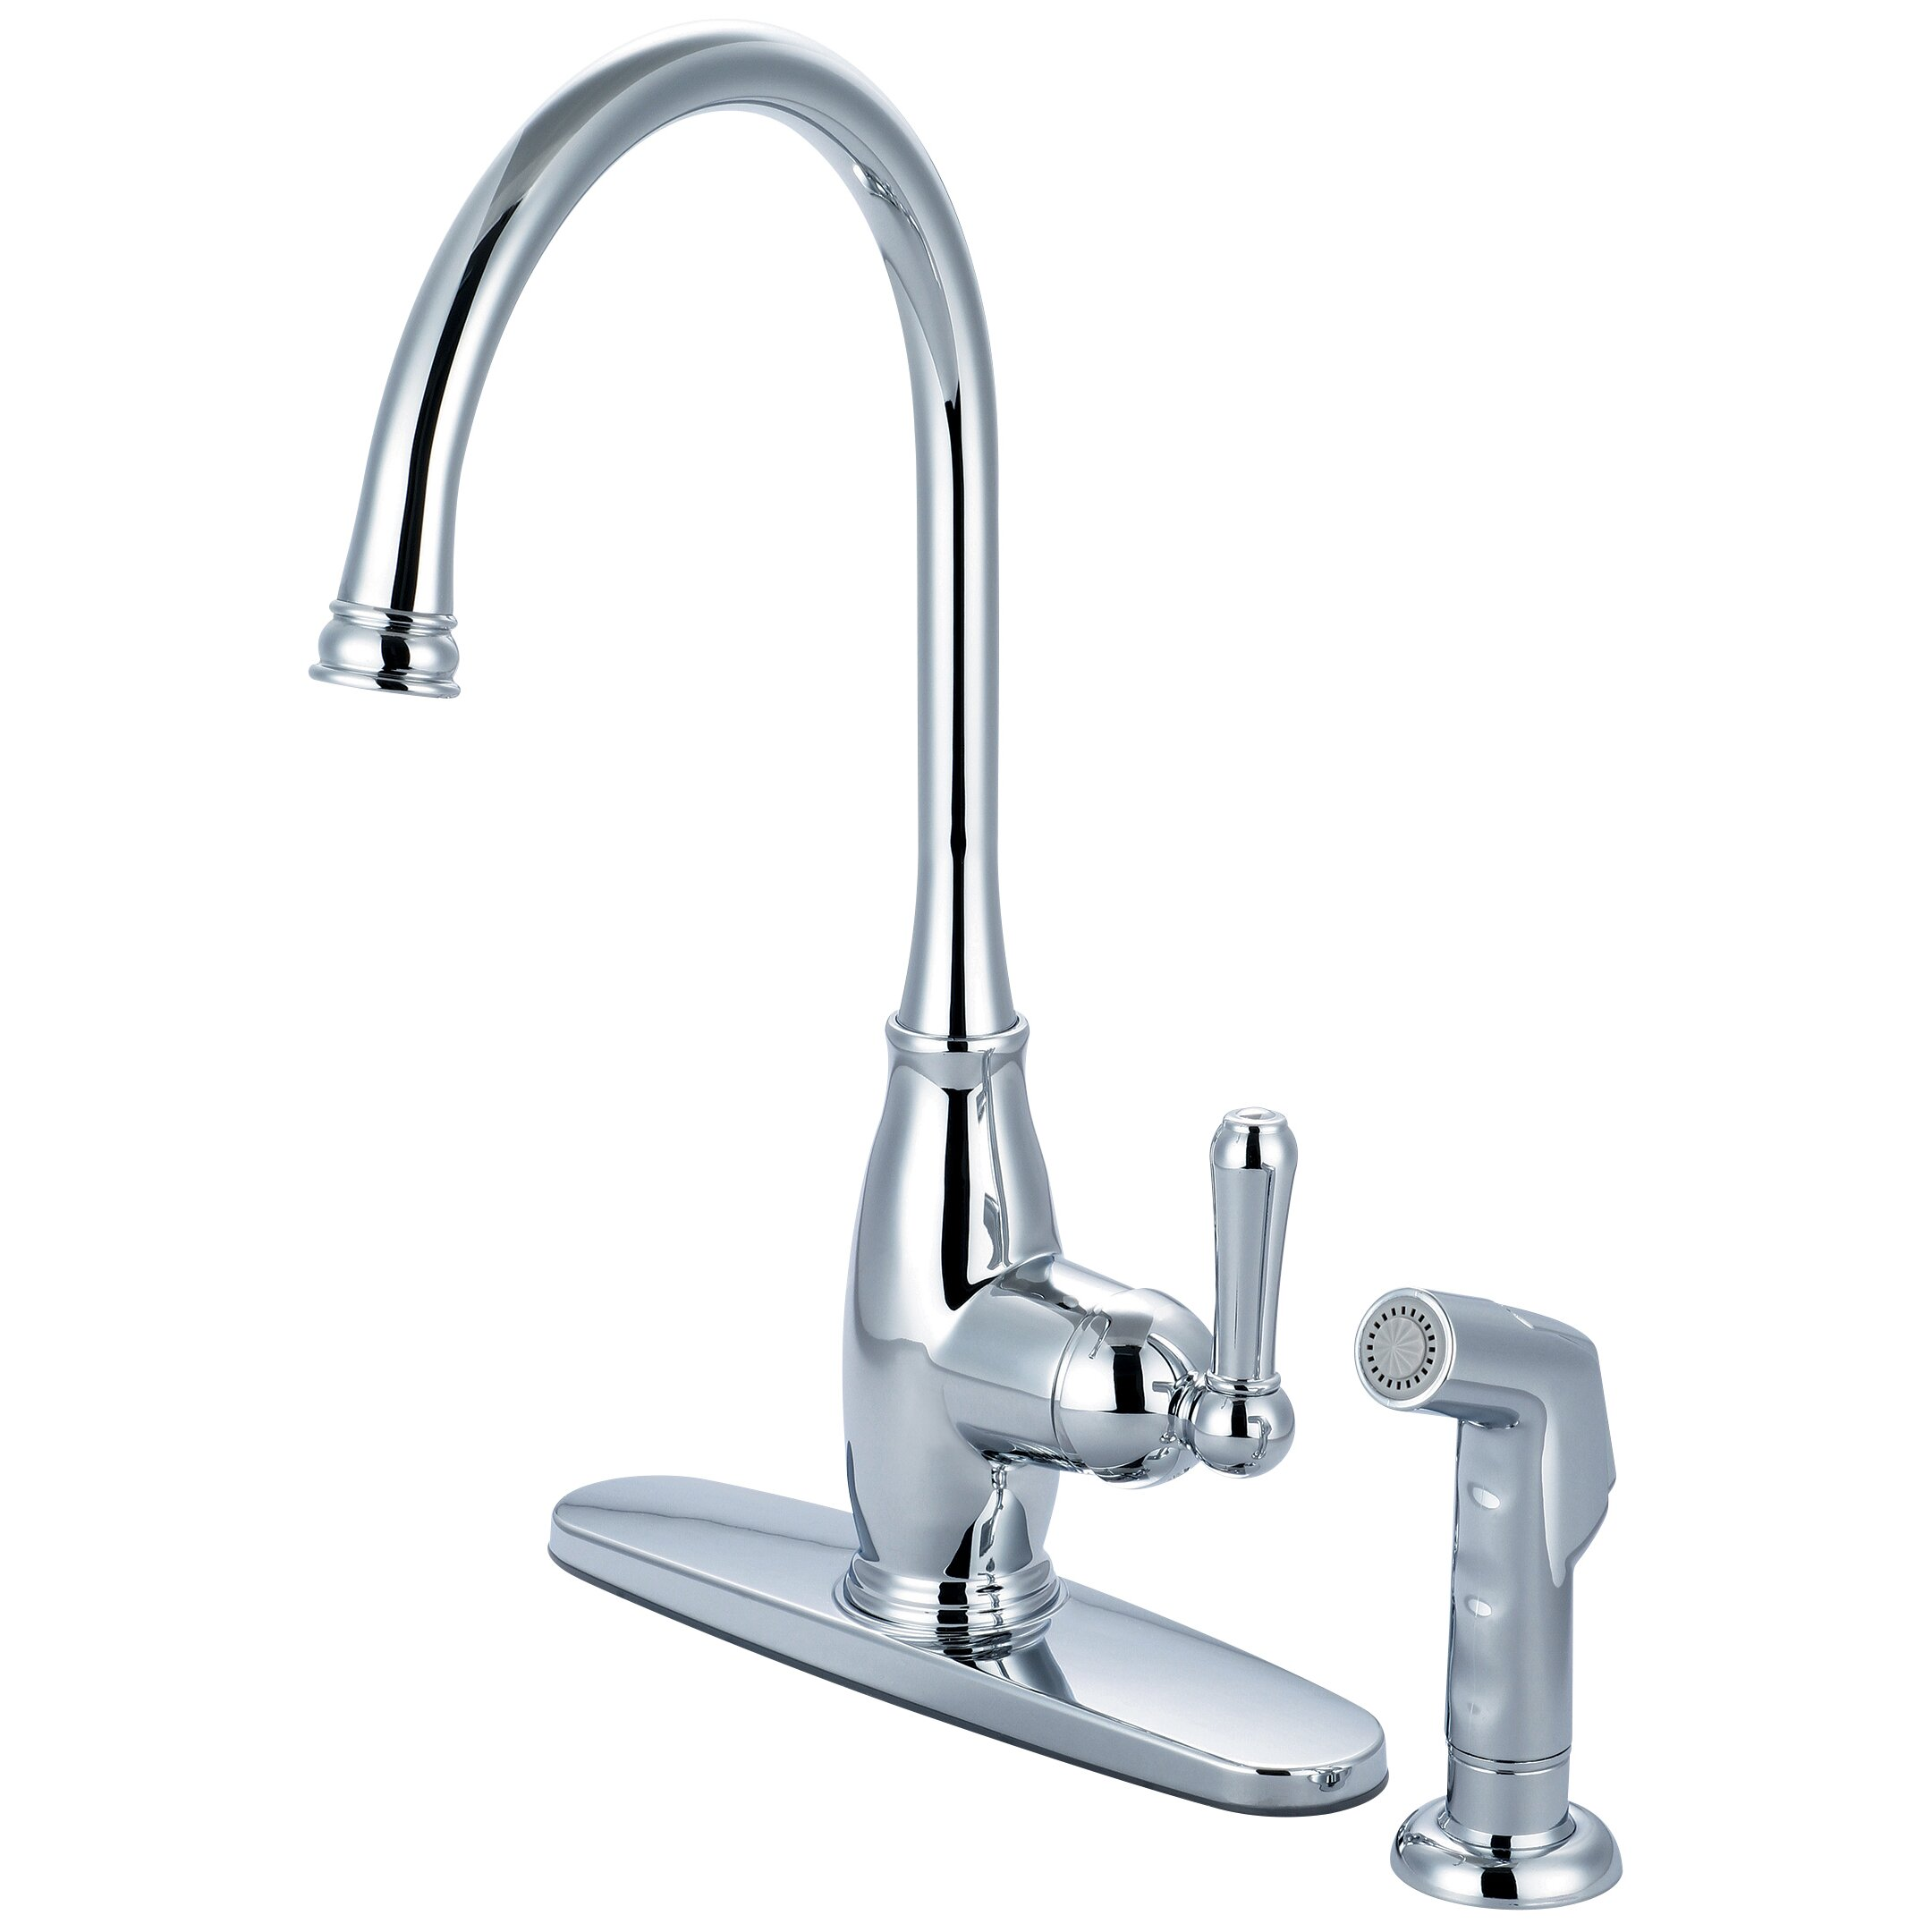 single handle kitchen faucet with deck cover plate and